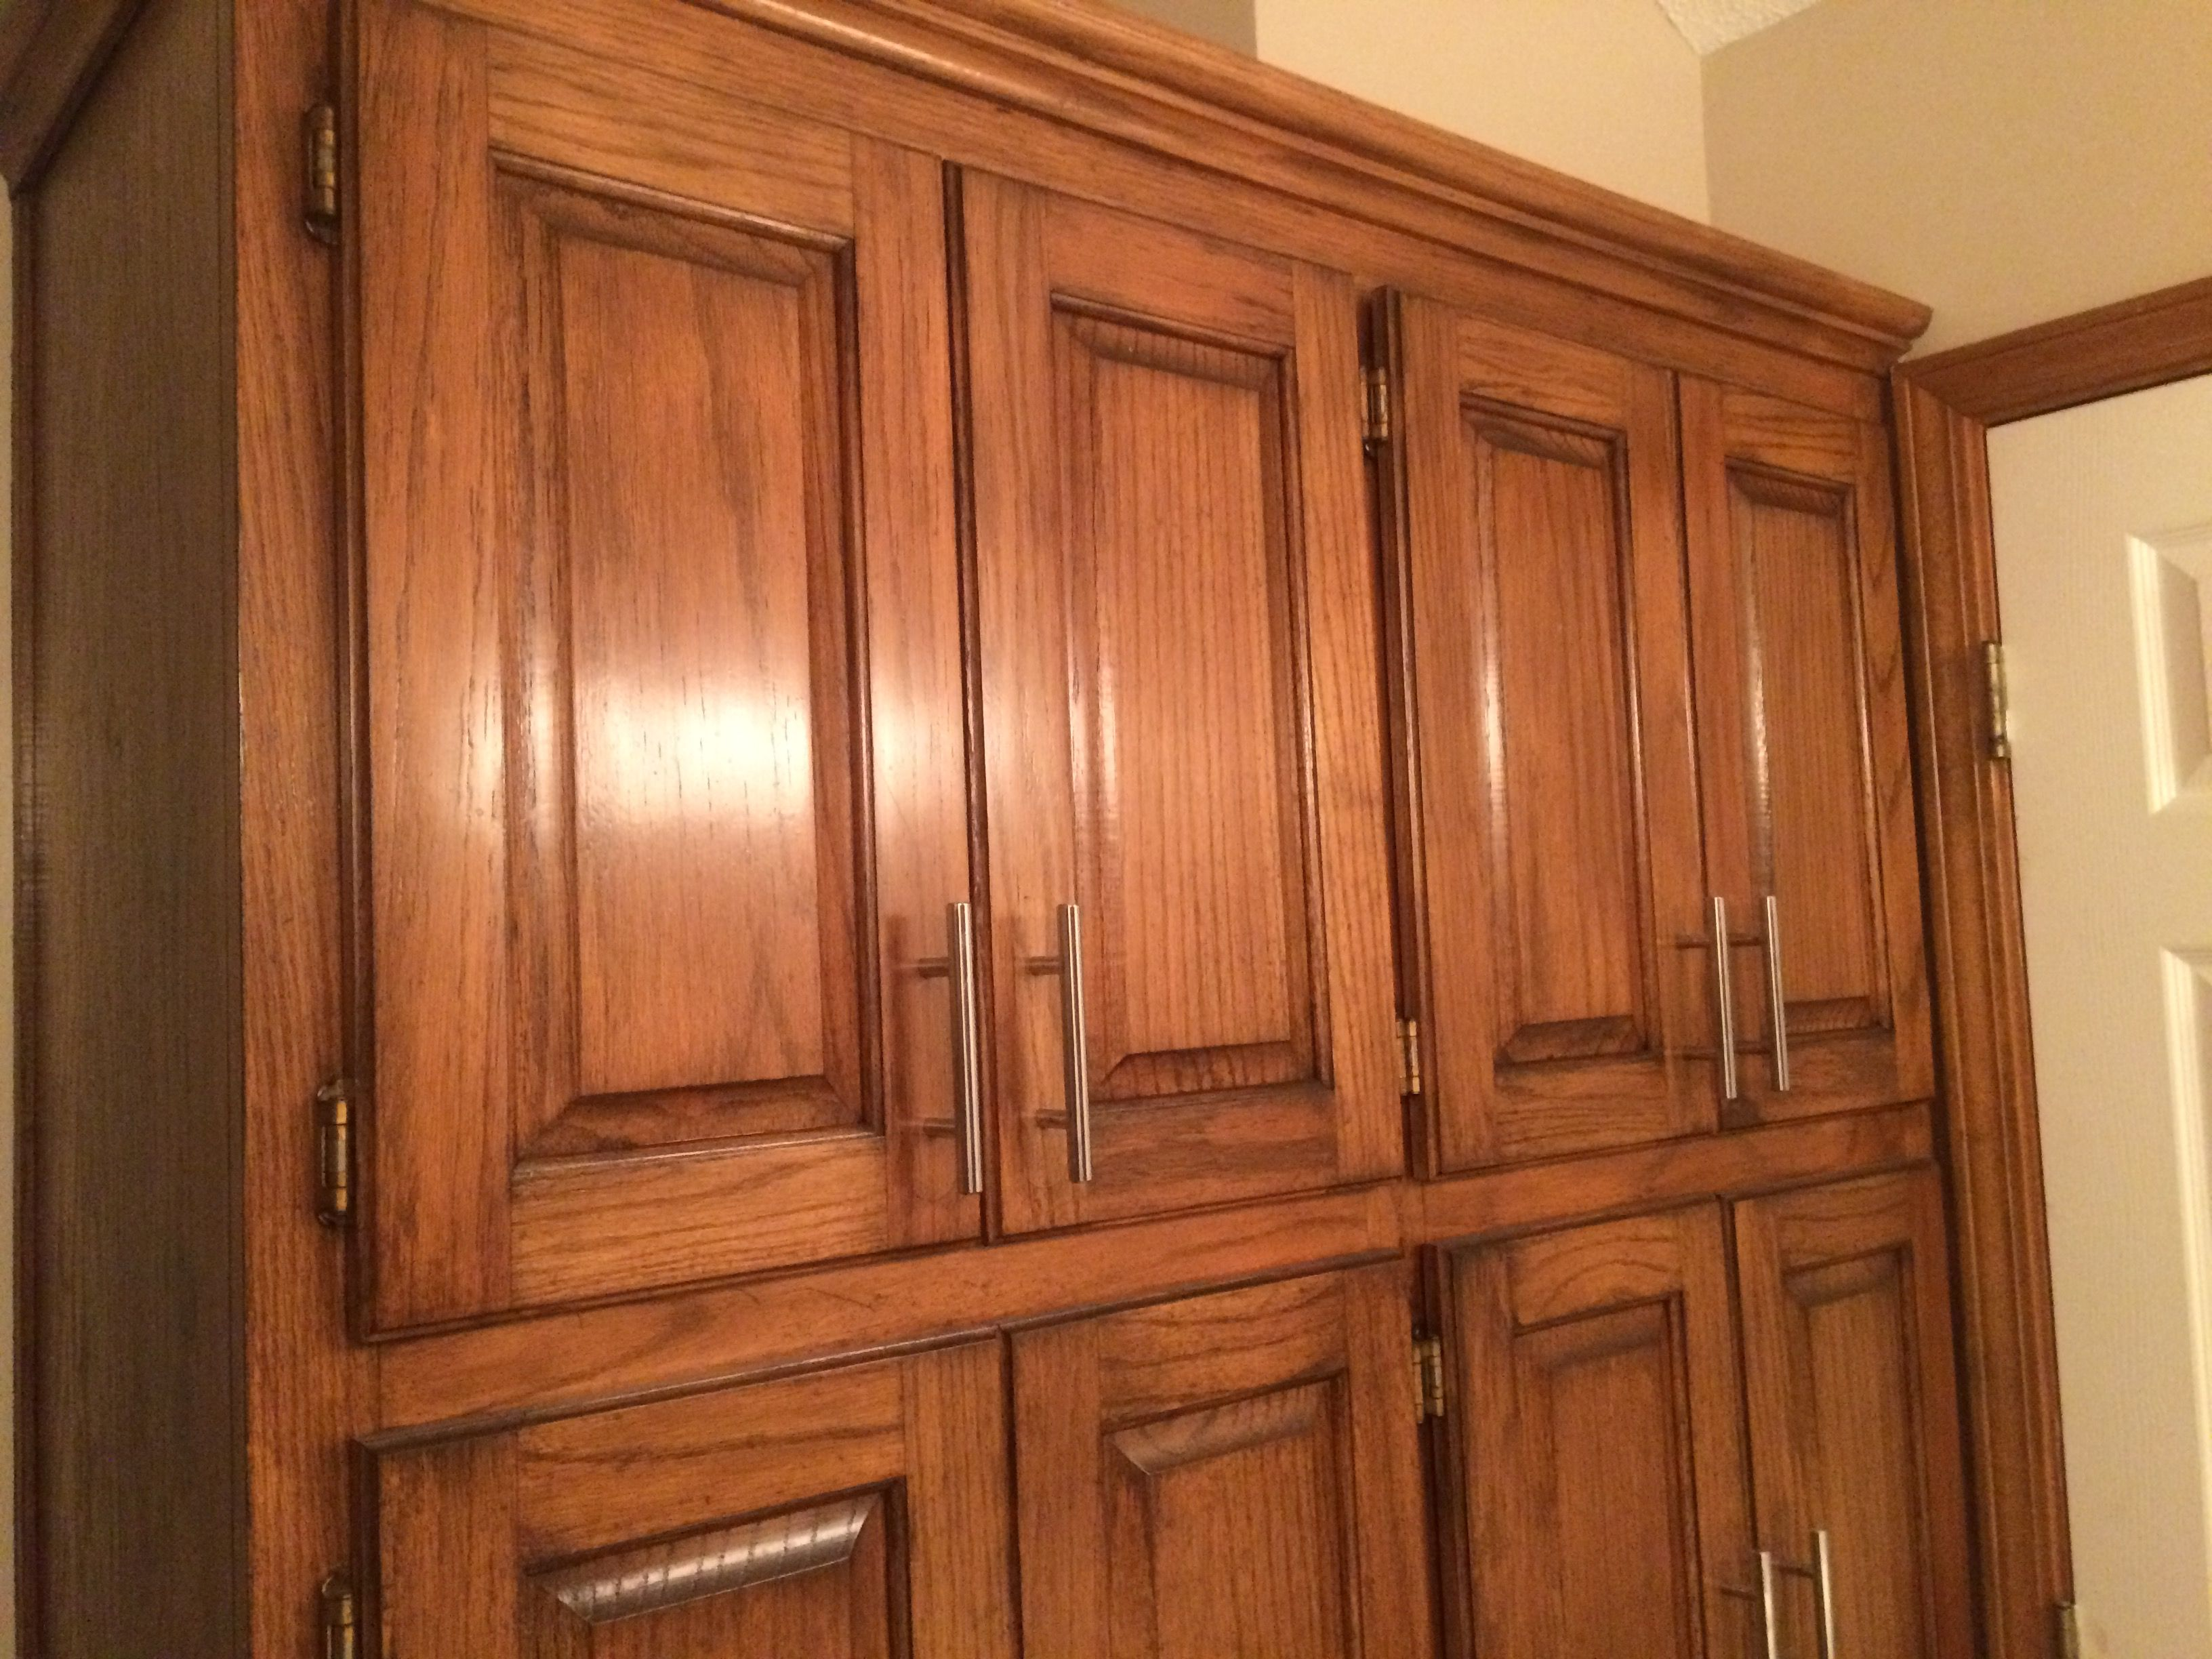 sanding and restaining kitchen cabinets franke sinks catalogue golden oak enhanced with mahogany gel stain